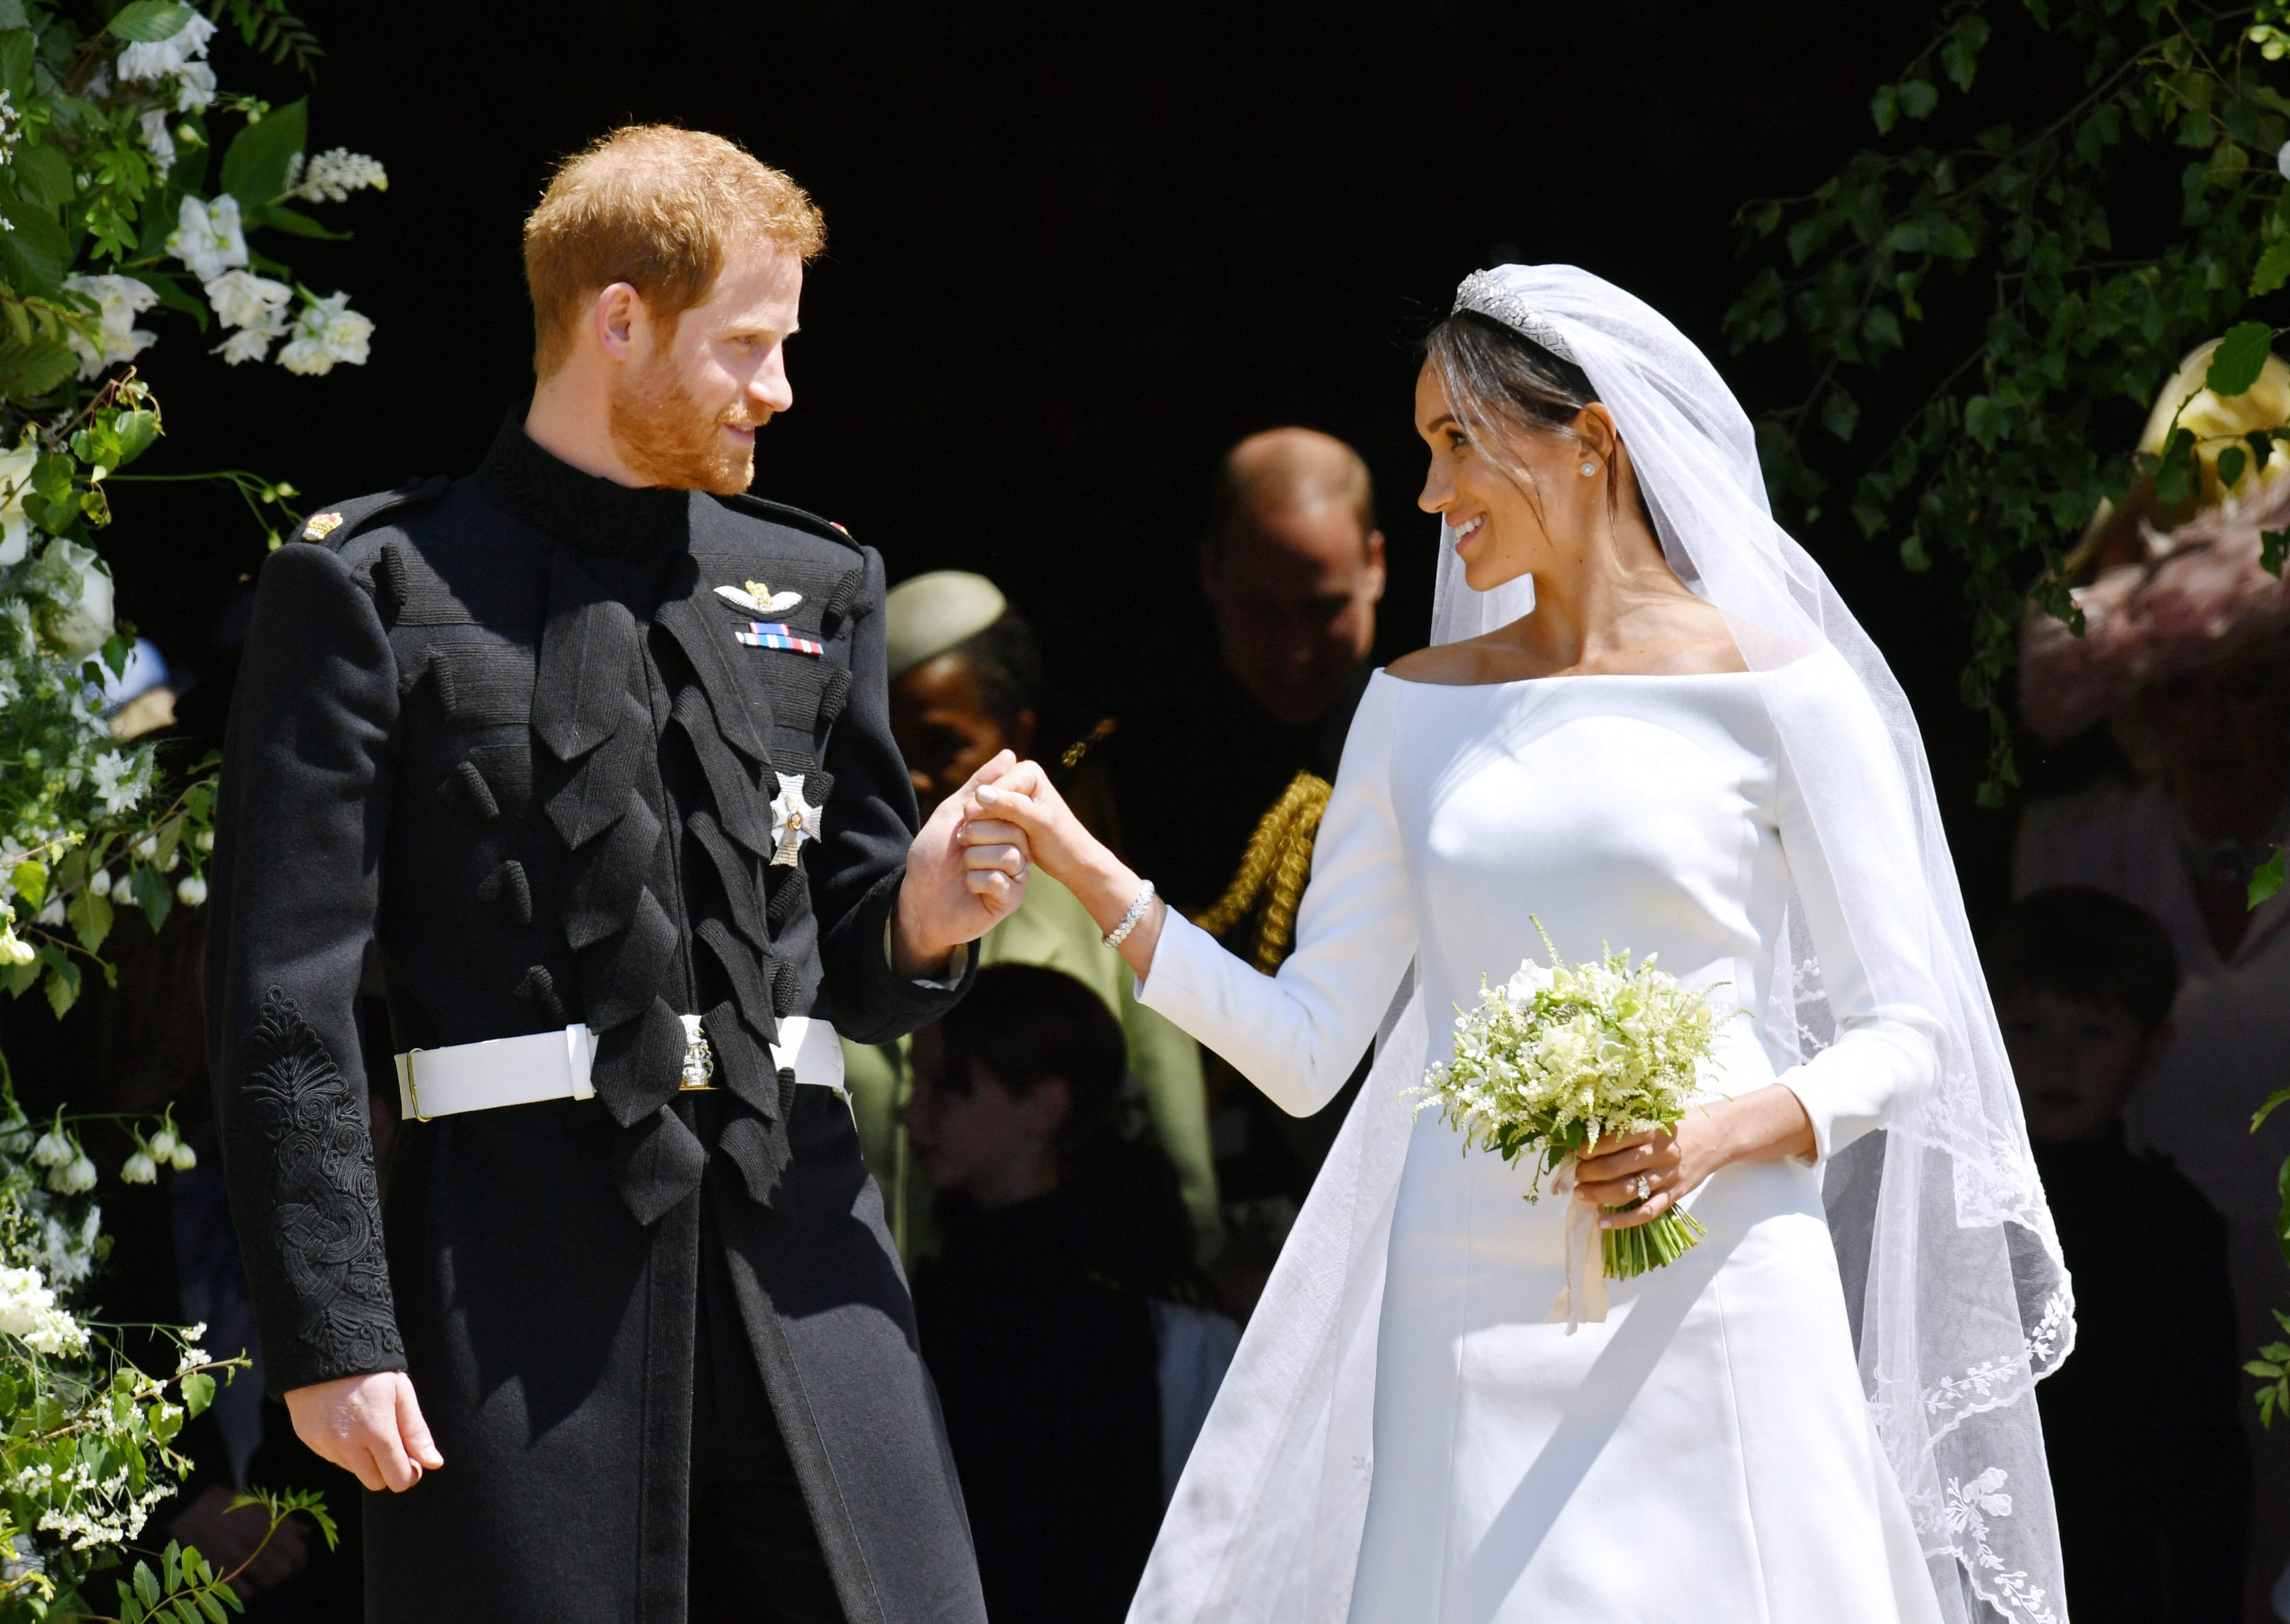 Prince Harry and Meghan Markle The wedding of Prince Harry and Meghan Markle, Ceremony, St George's Chapel, Windsor Castle, Berkshire, UK - 19 May 2018